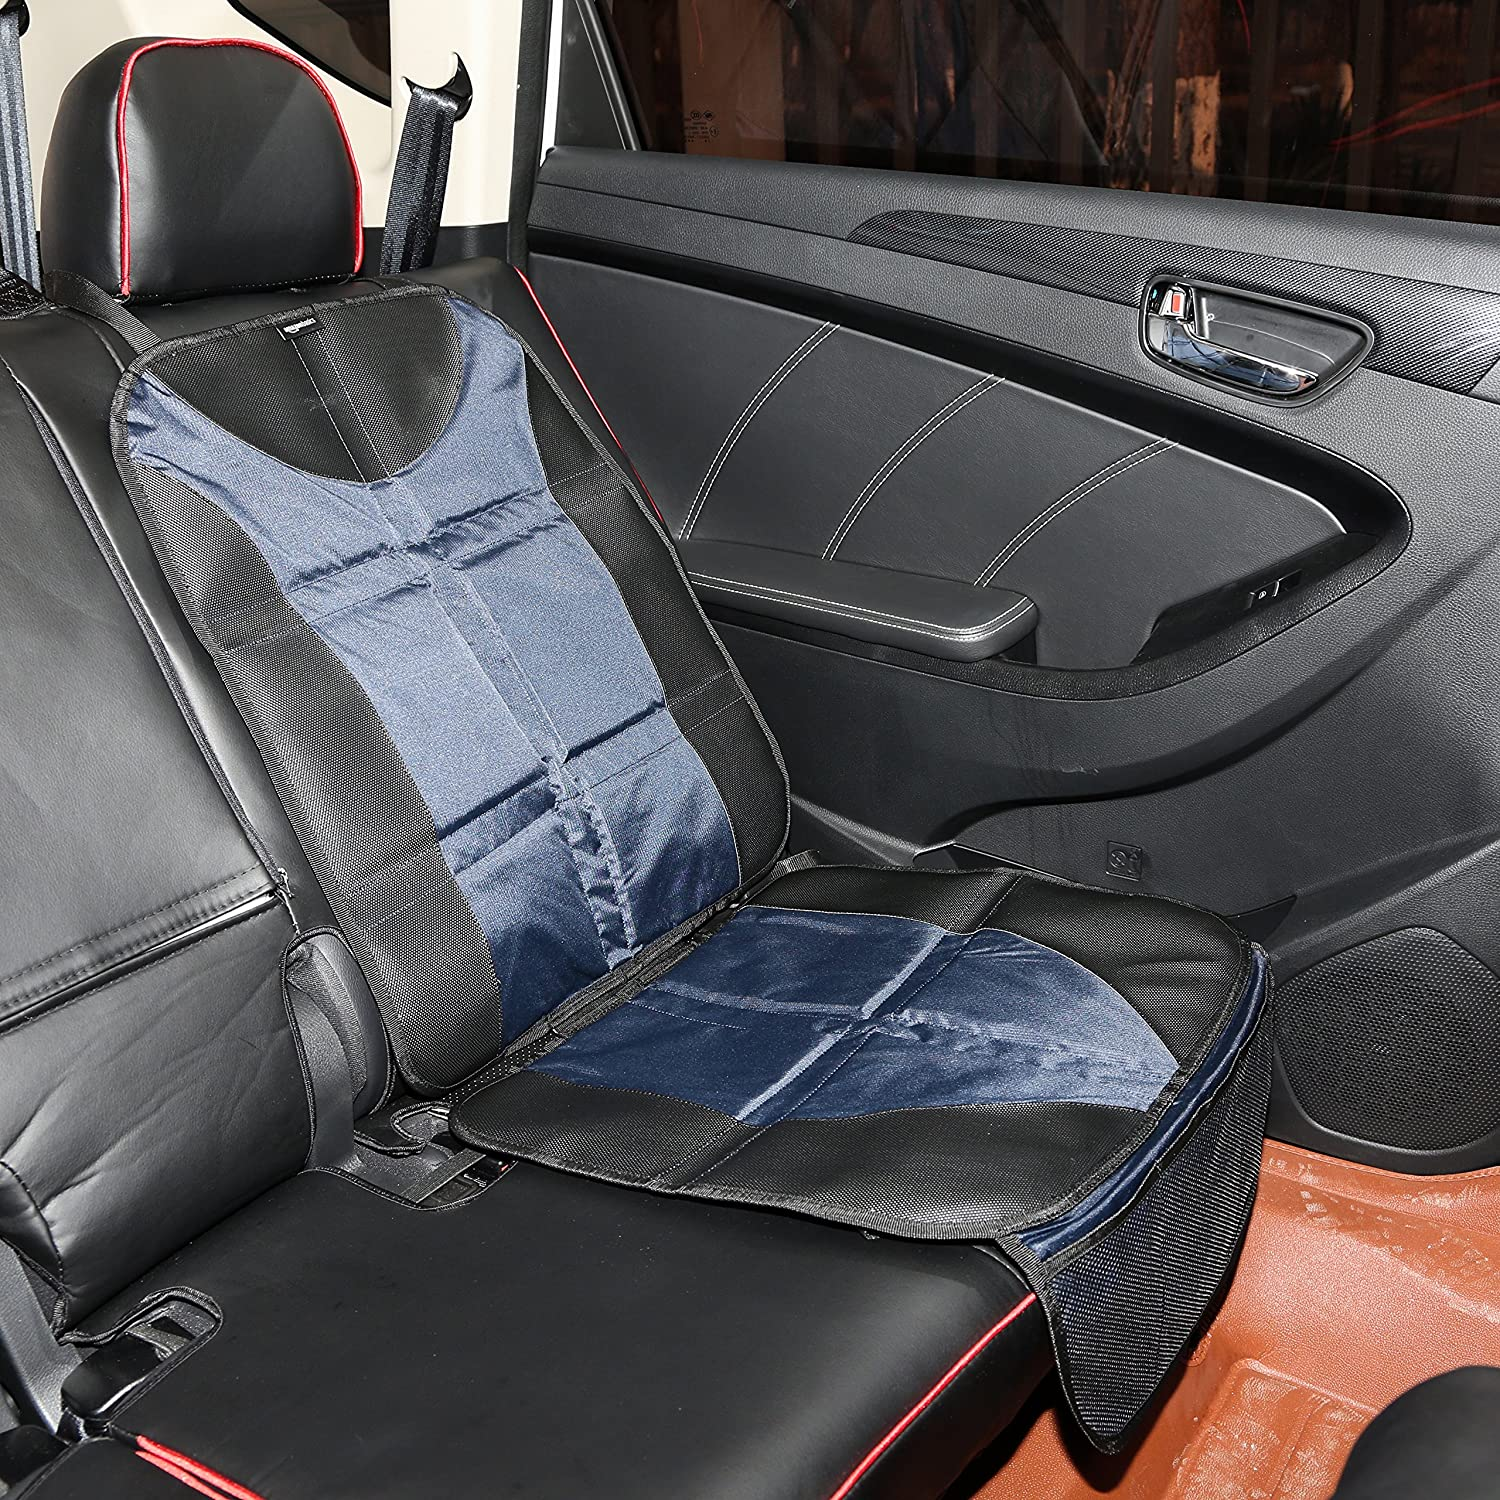 MiKiBi-77 Car Seat Cover Fast and F-urious Comfortable Stylish Design Auto Seat Protector Protector for Cars